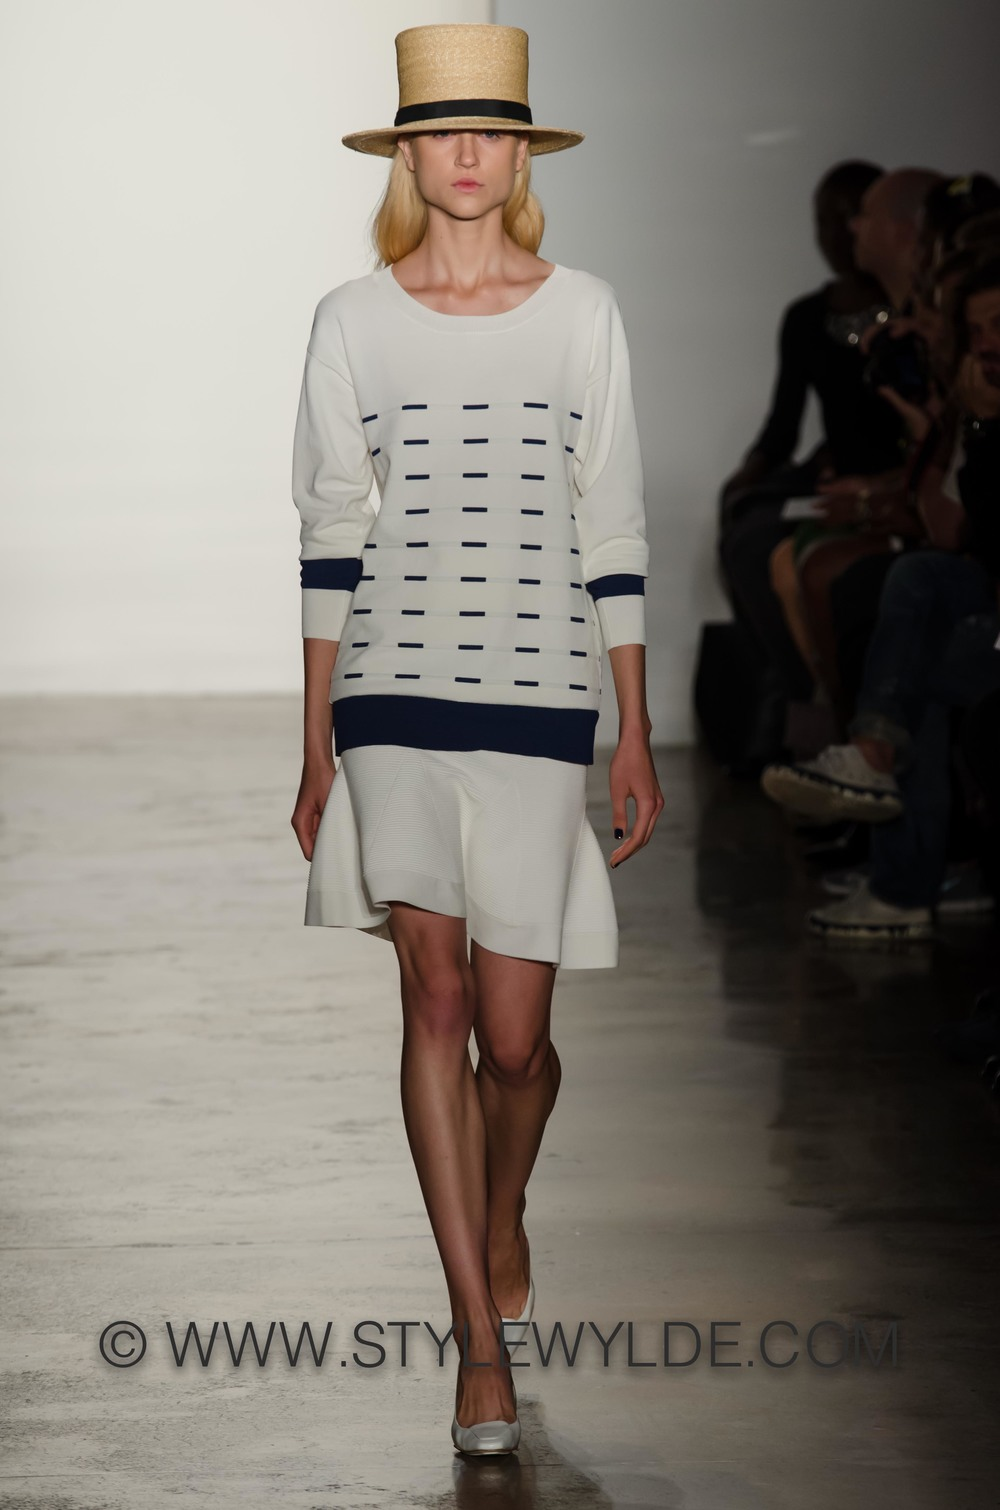 stylewylde_timo_weiland_gallery_ss2014-1.jpg